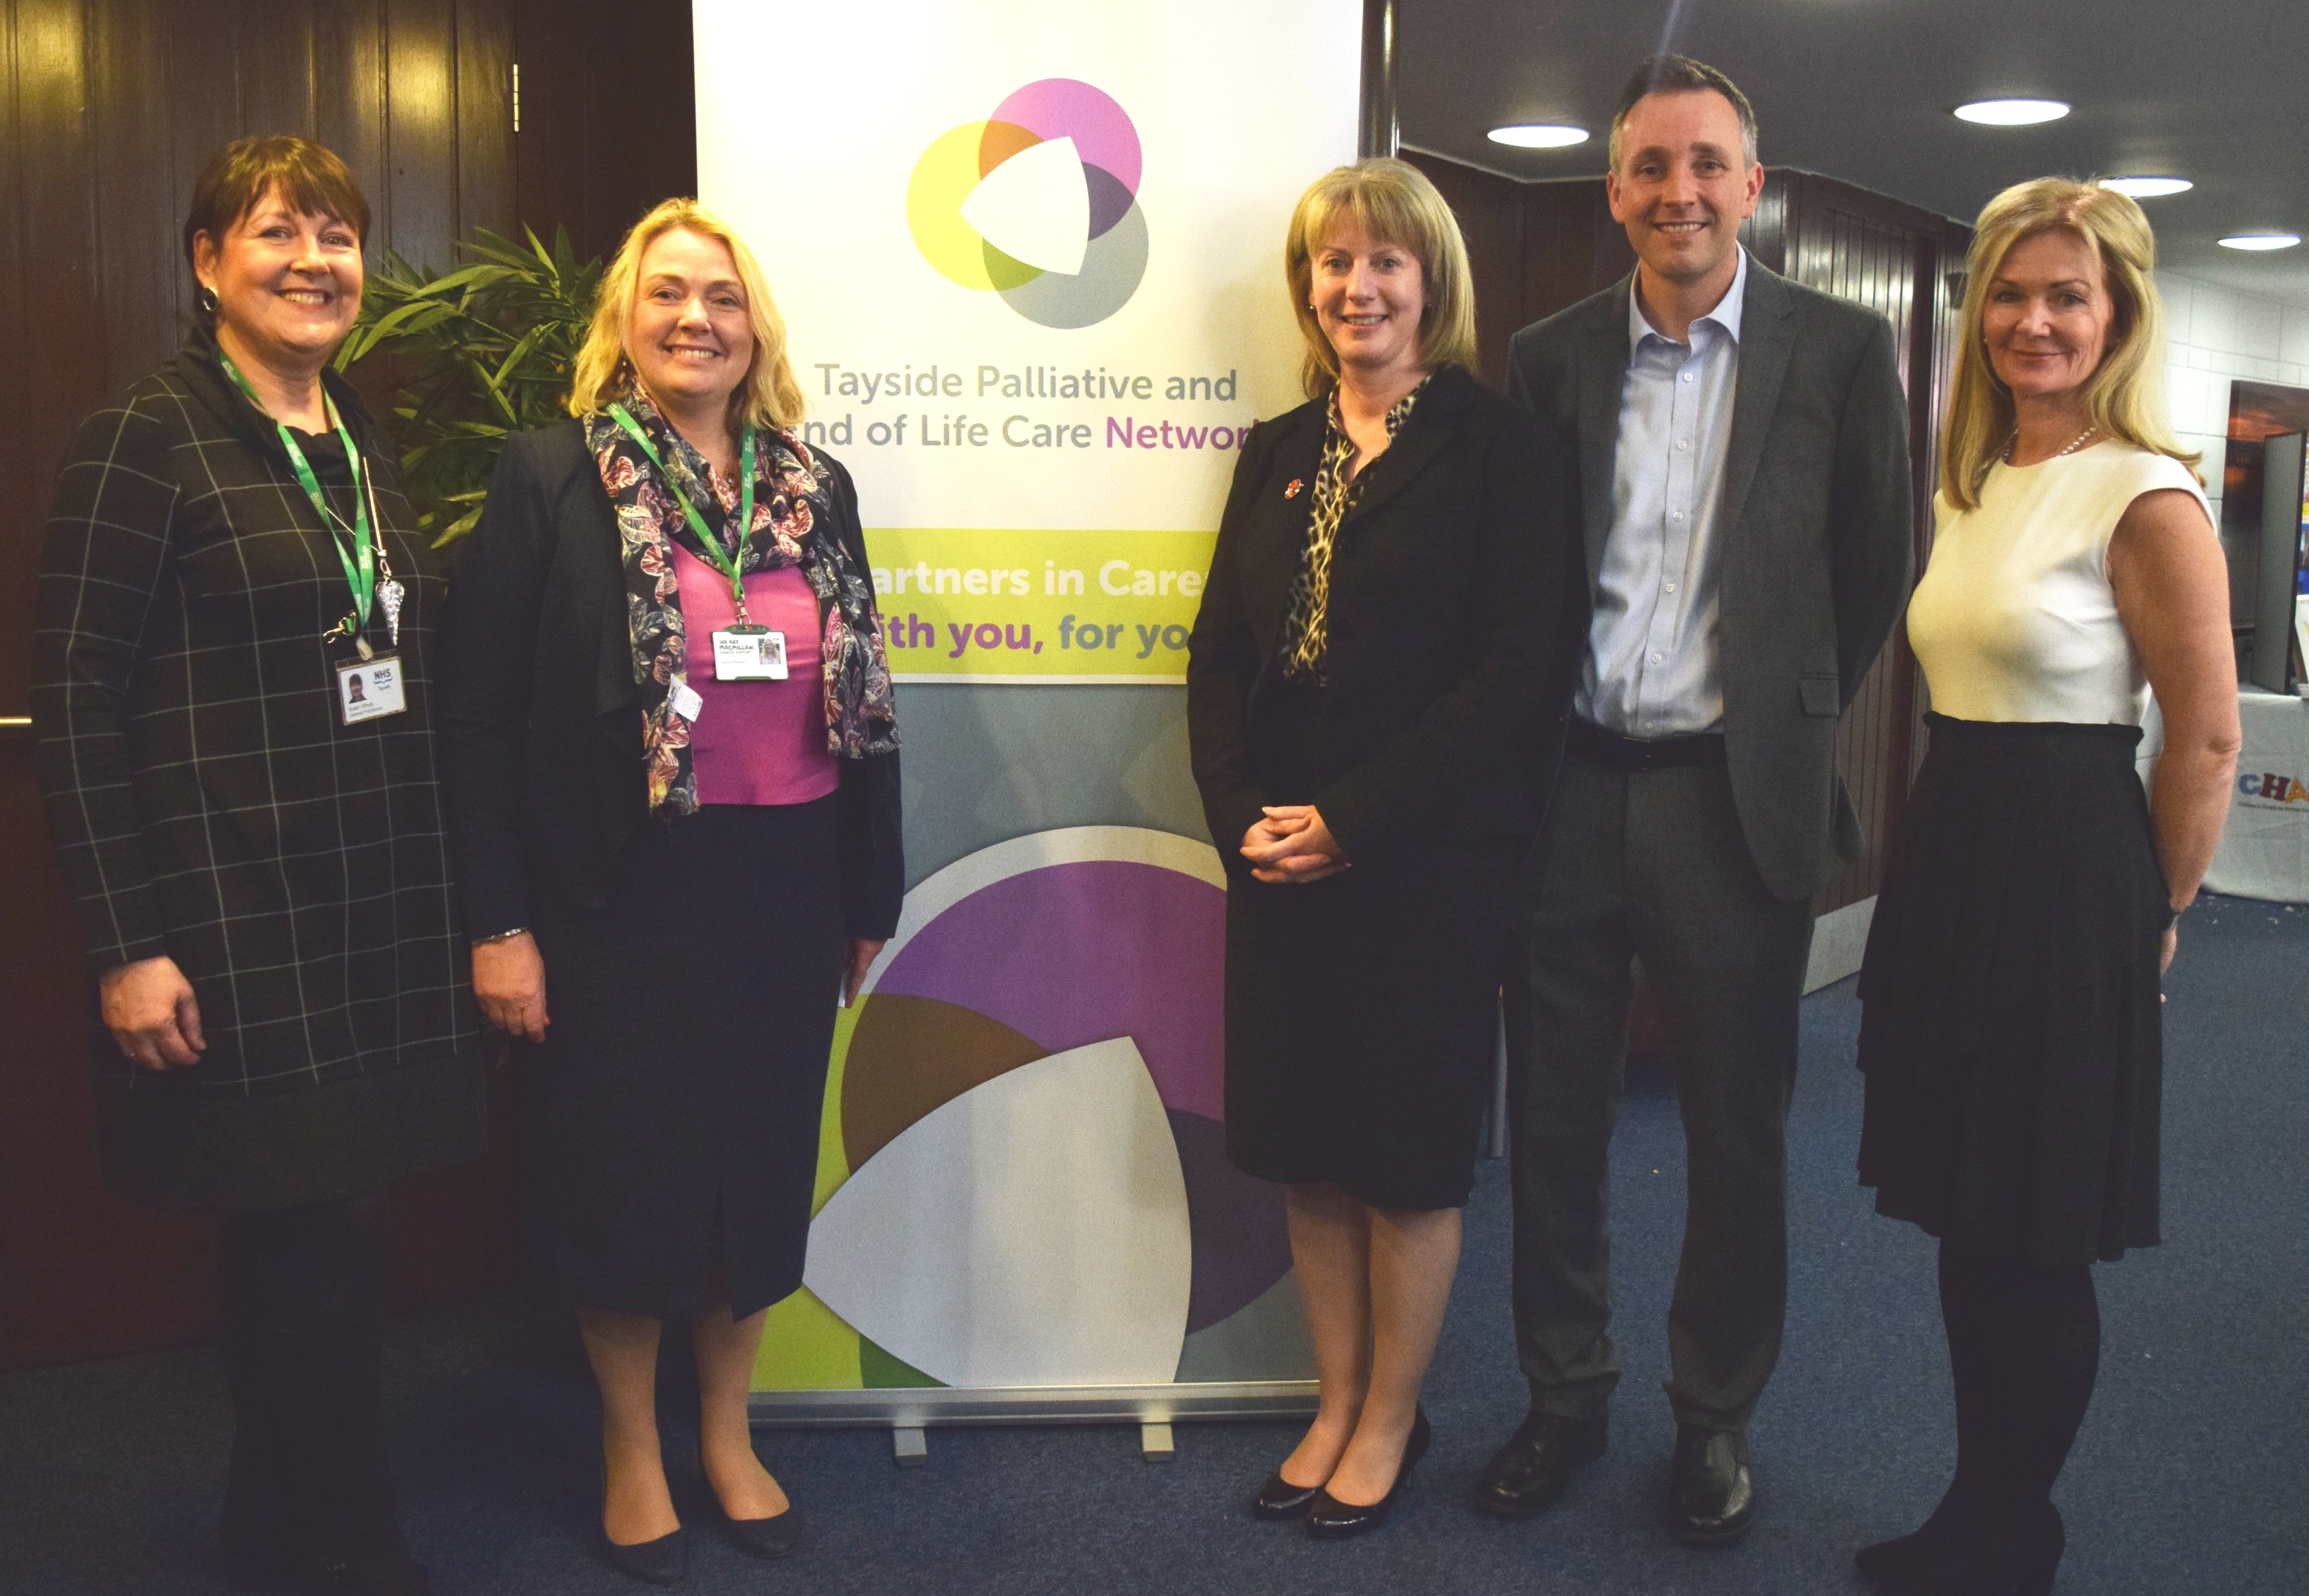 (Left to right) Joint clinical lead Dr Susan Whyte, Janice Preston, Shona Robison, joint clinical lead Deans Buchanan and Lesley McClay, chief executive of NHS Tayside